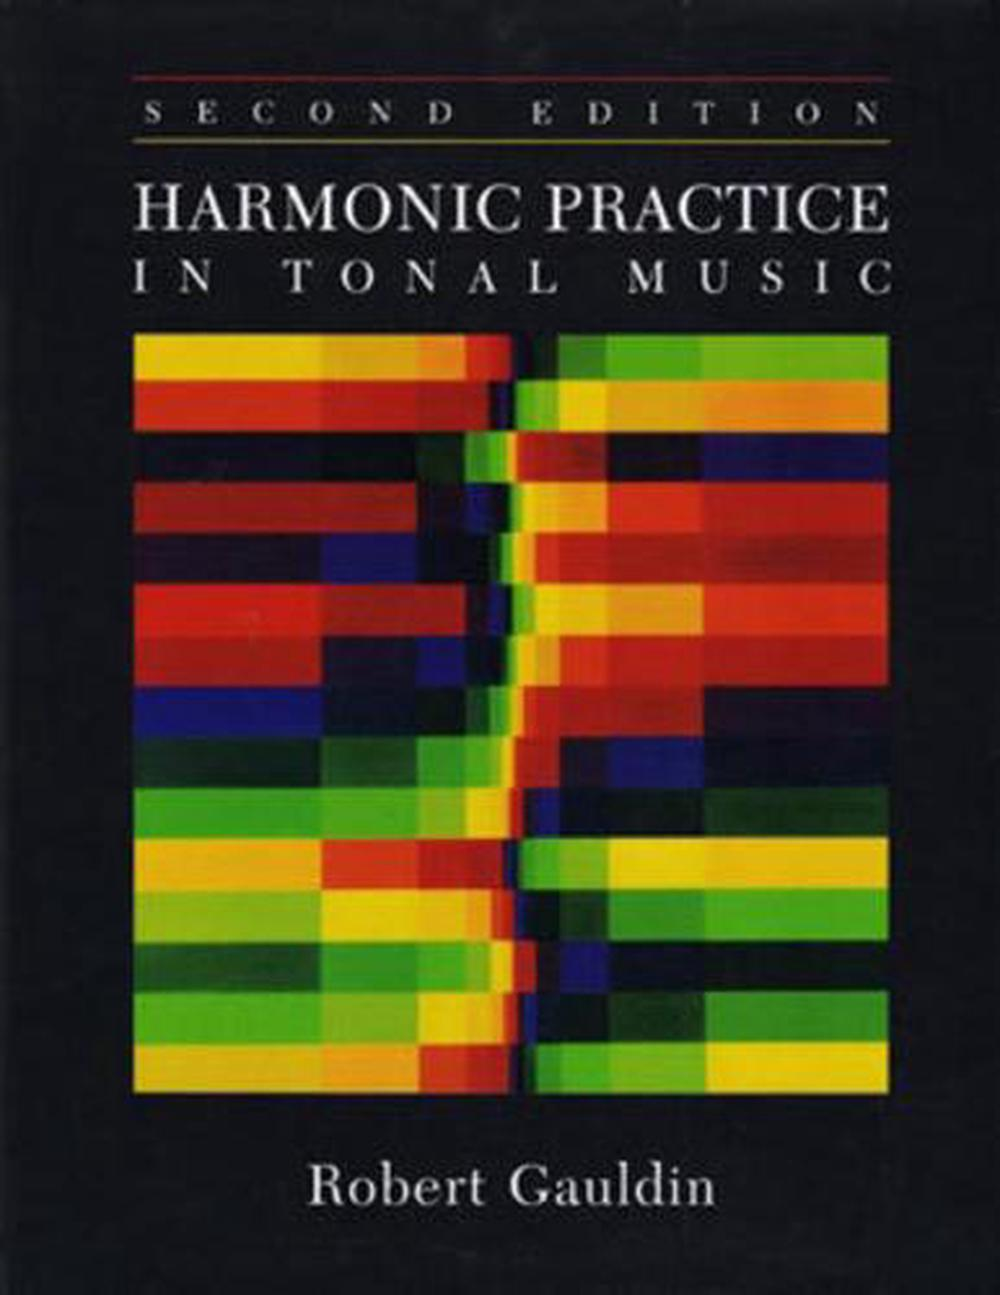 Harmonic Practice in Tonal Music by Robert Gauldin ...